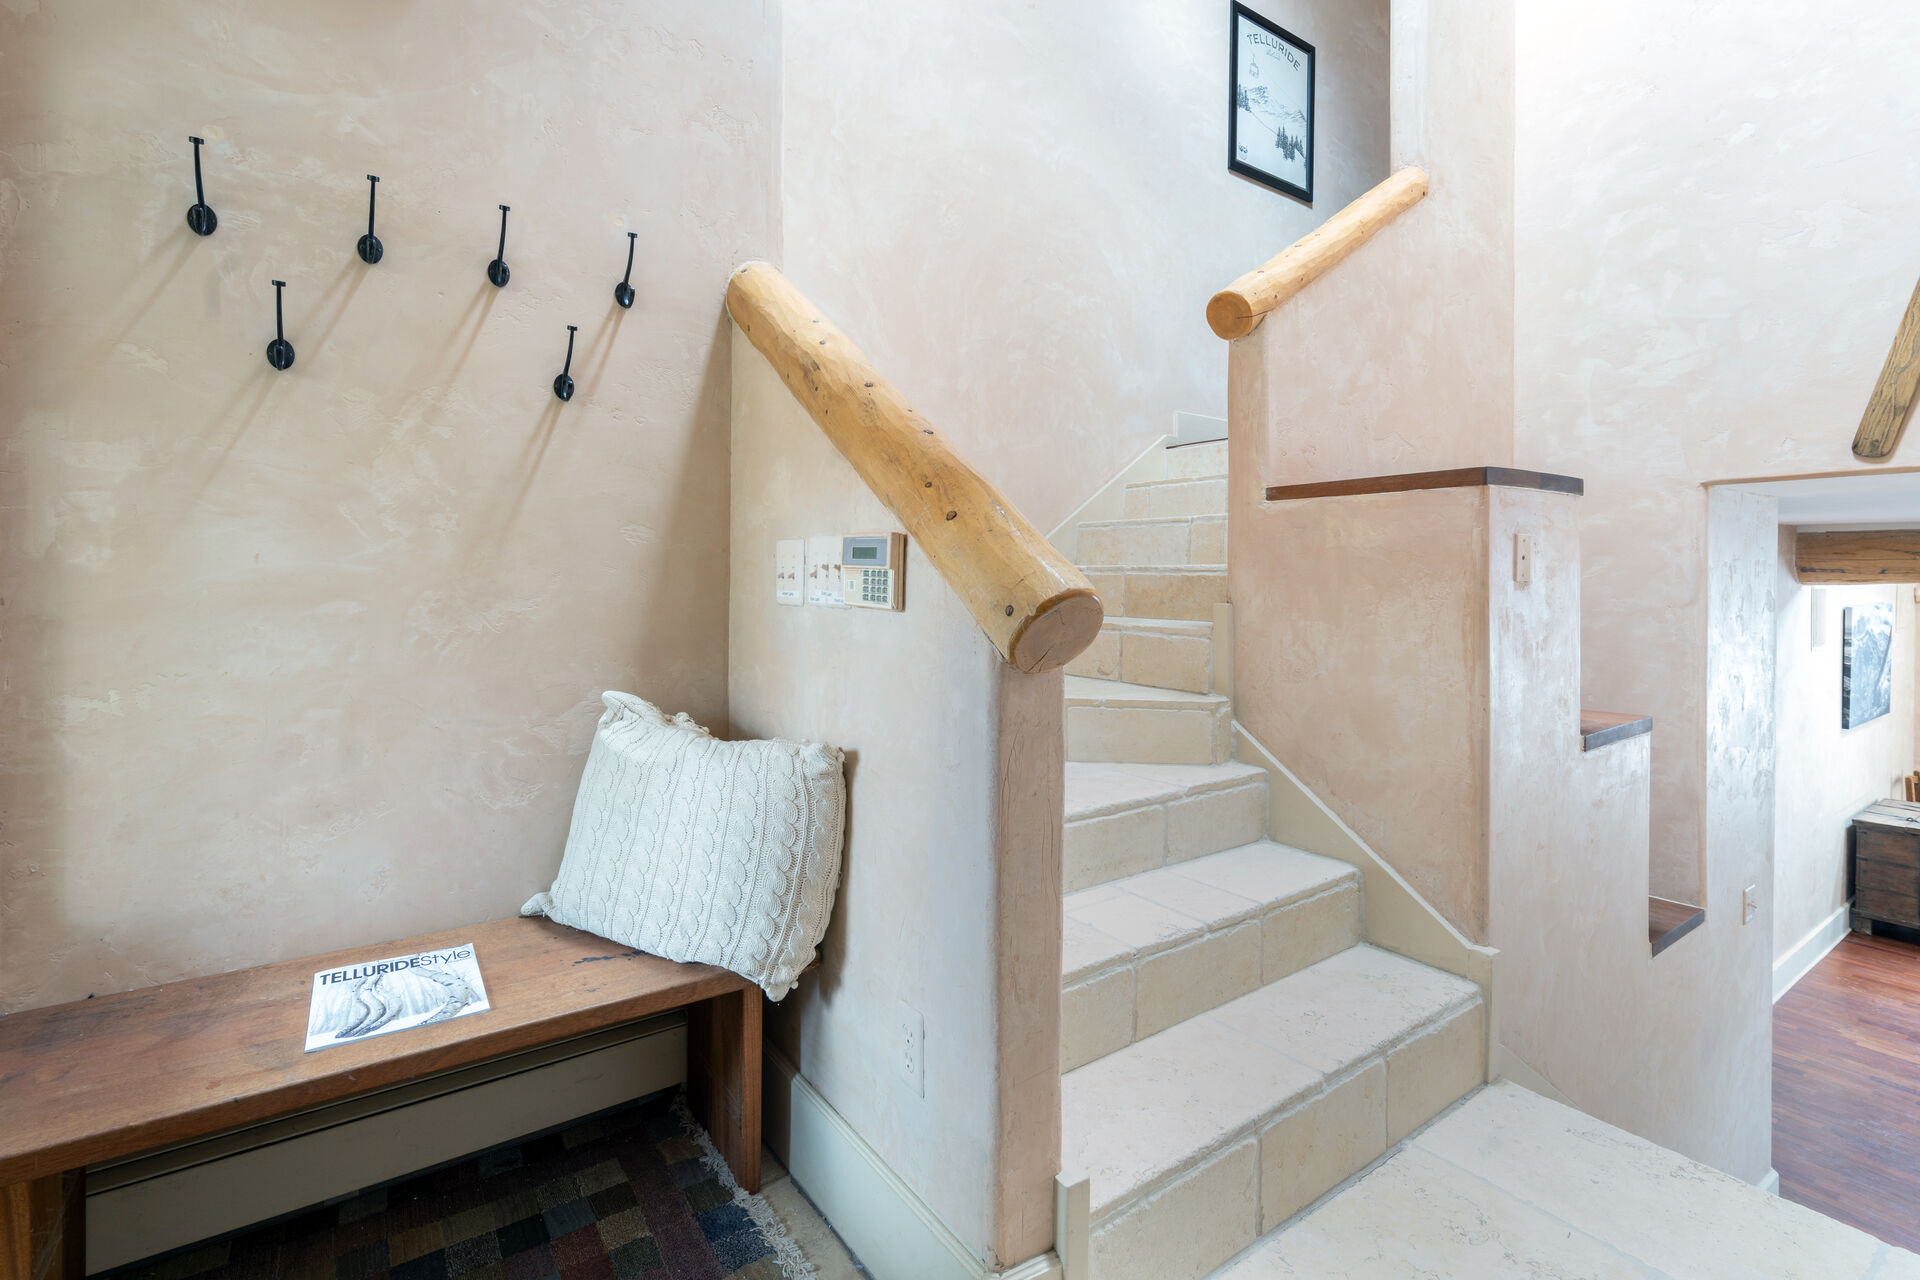 Stairwell with wood bannister